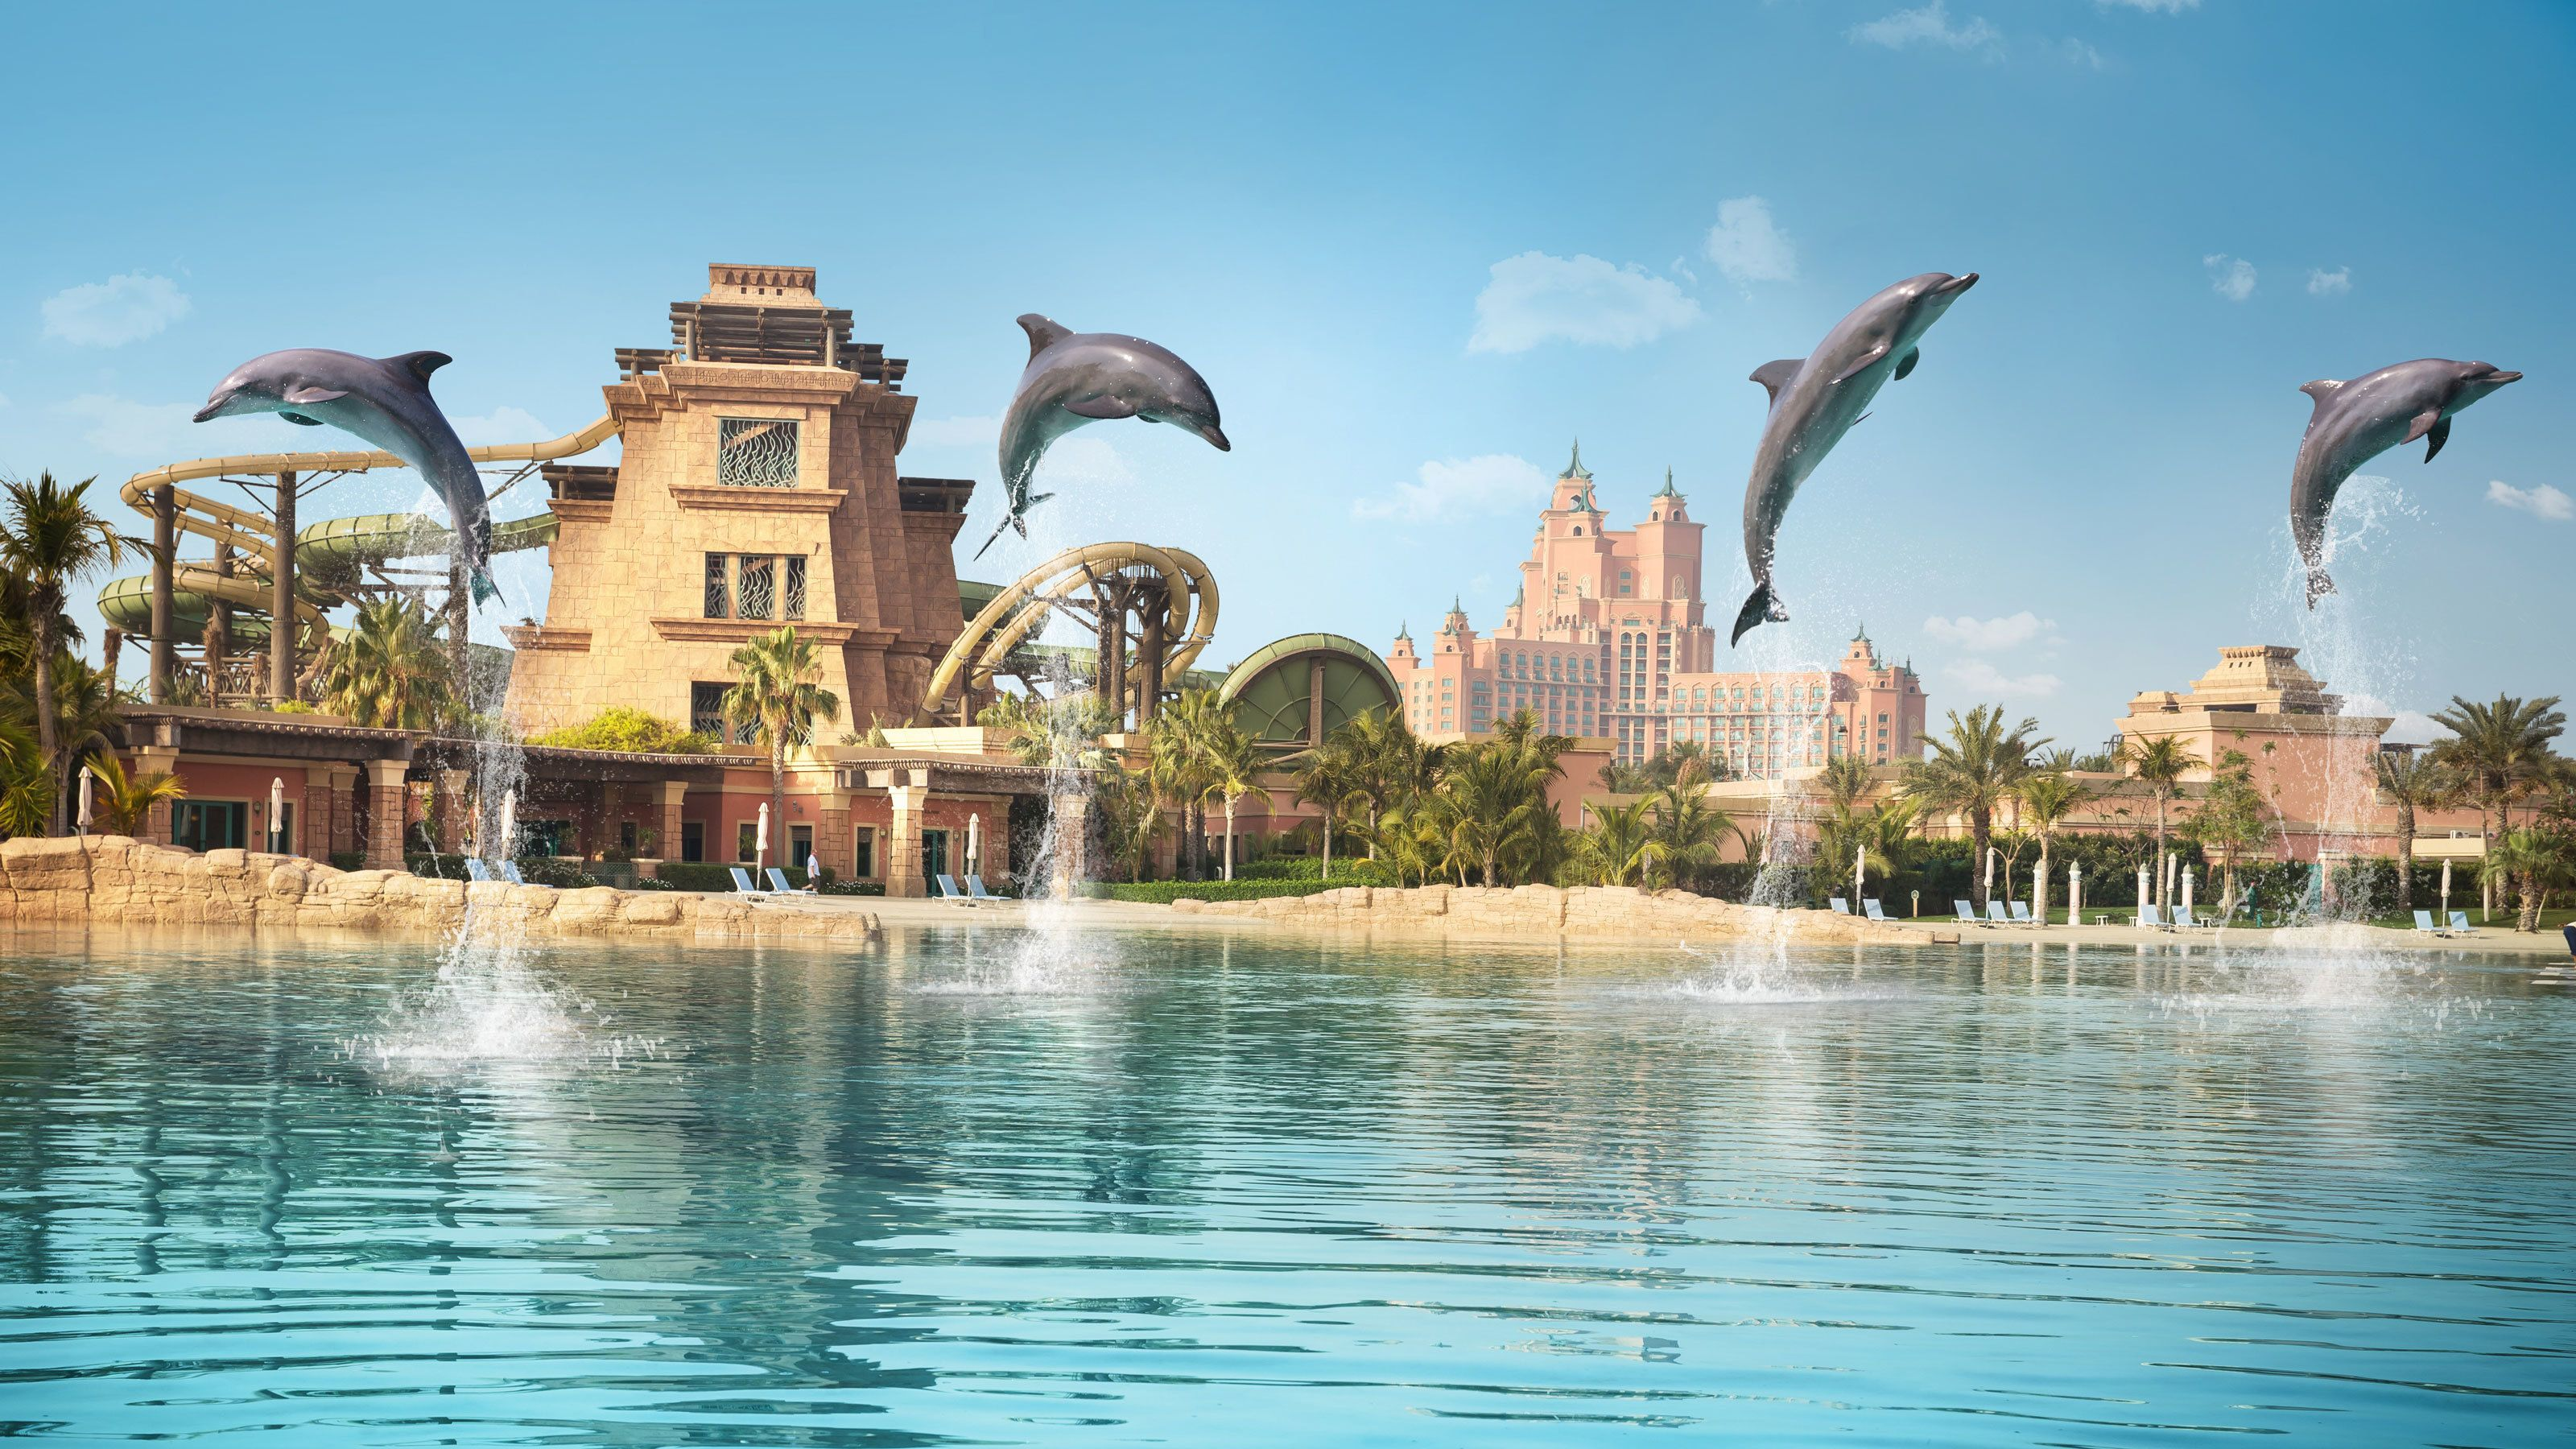 four dolphins leaping from water at waterpark in Dubai